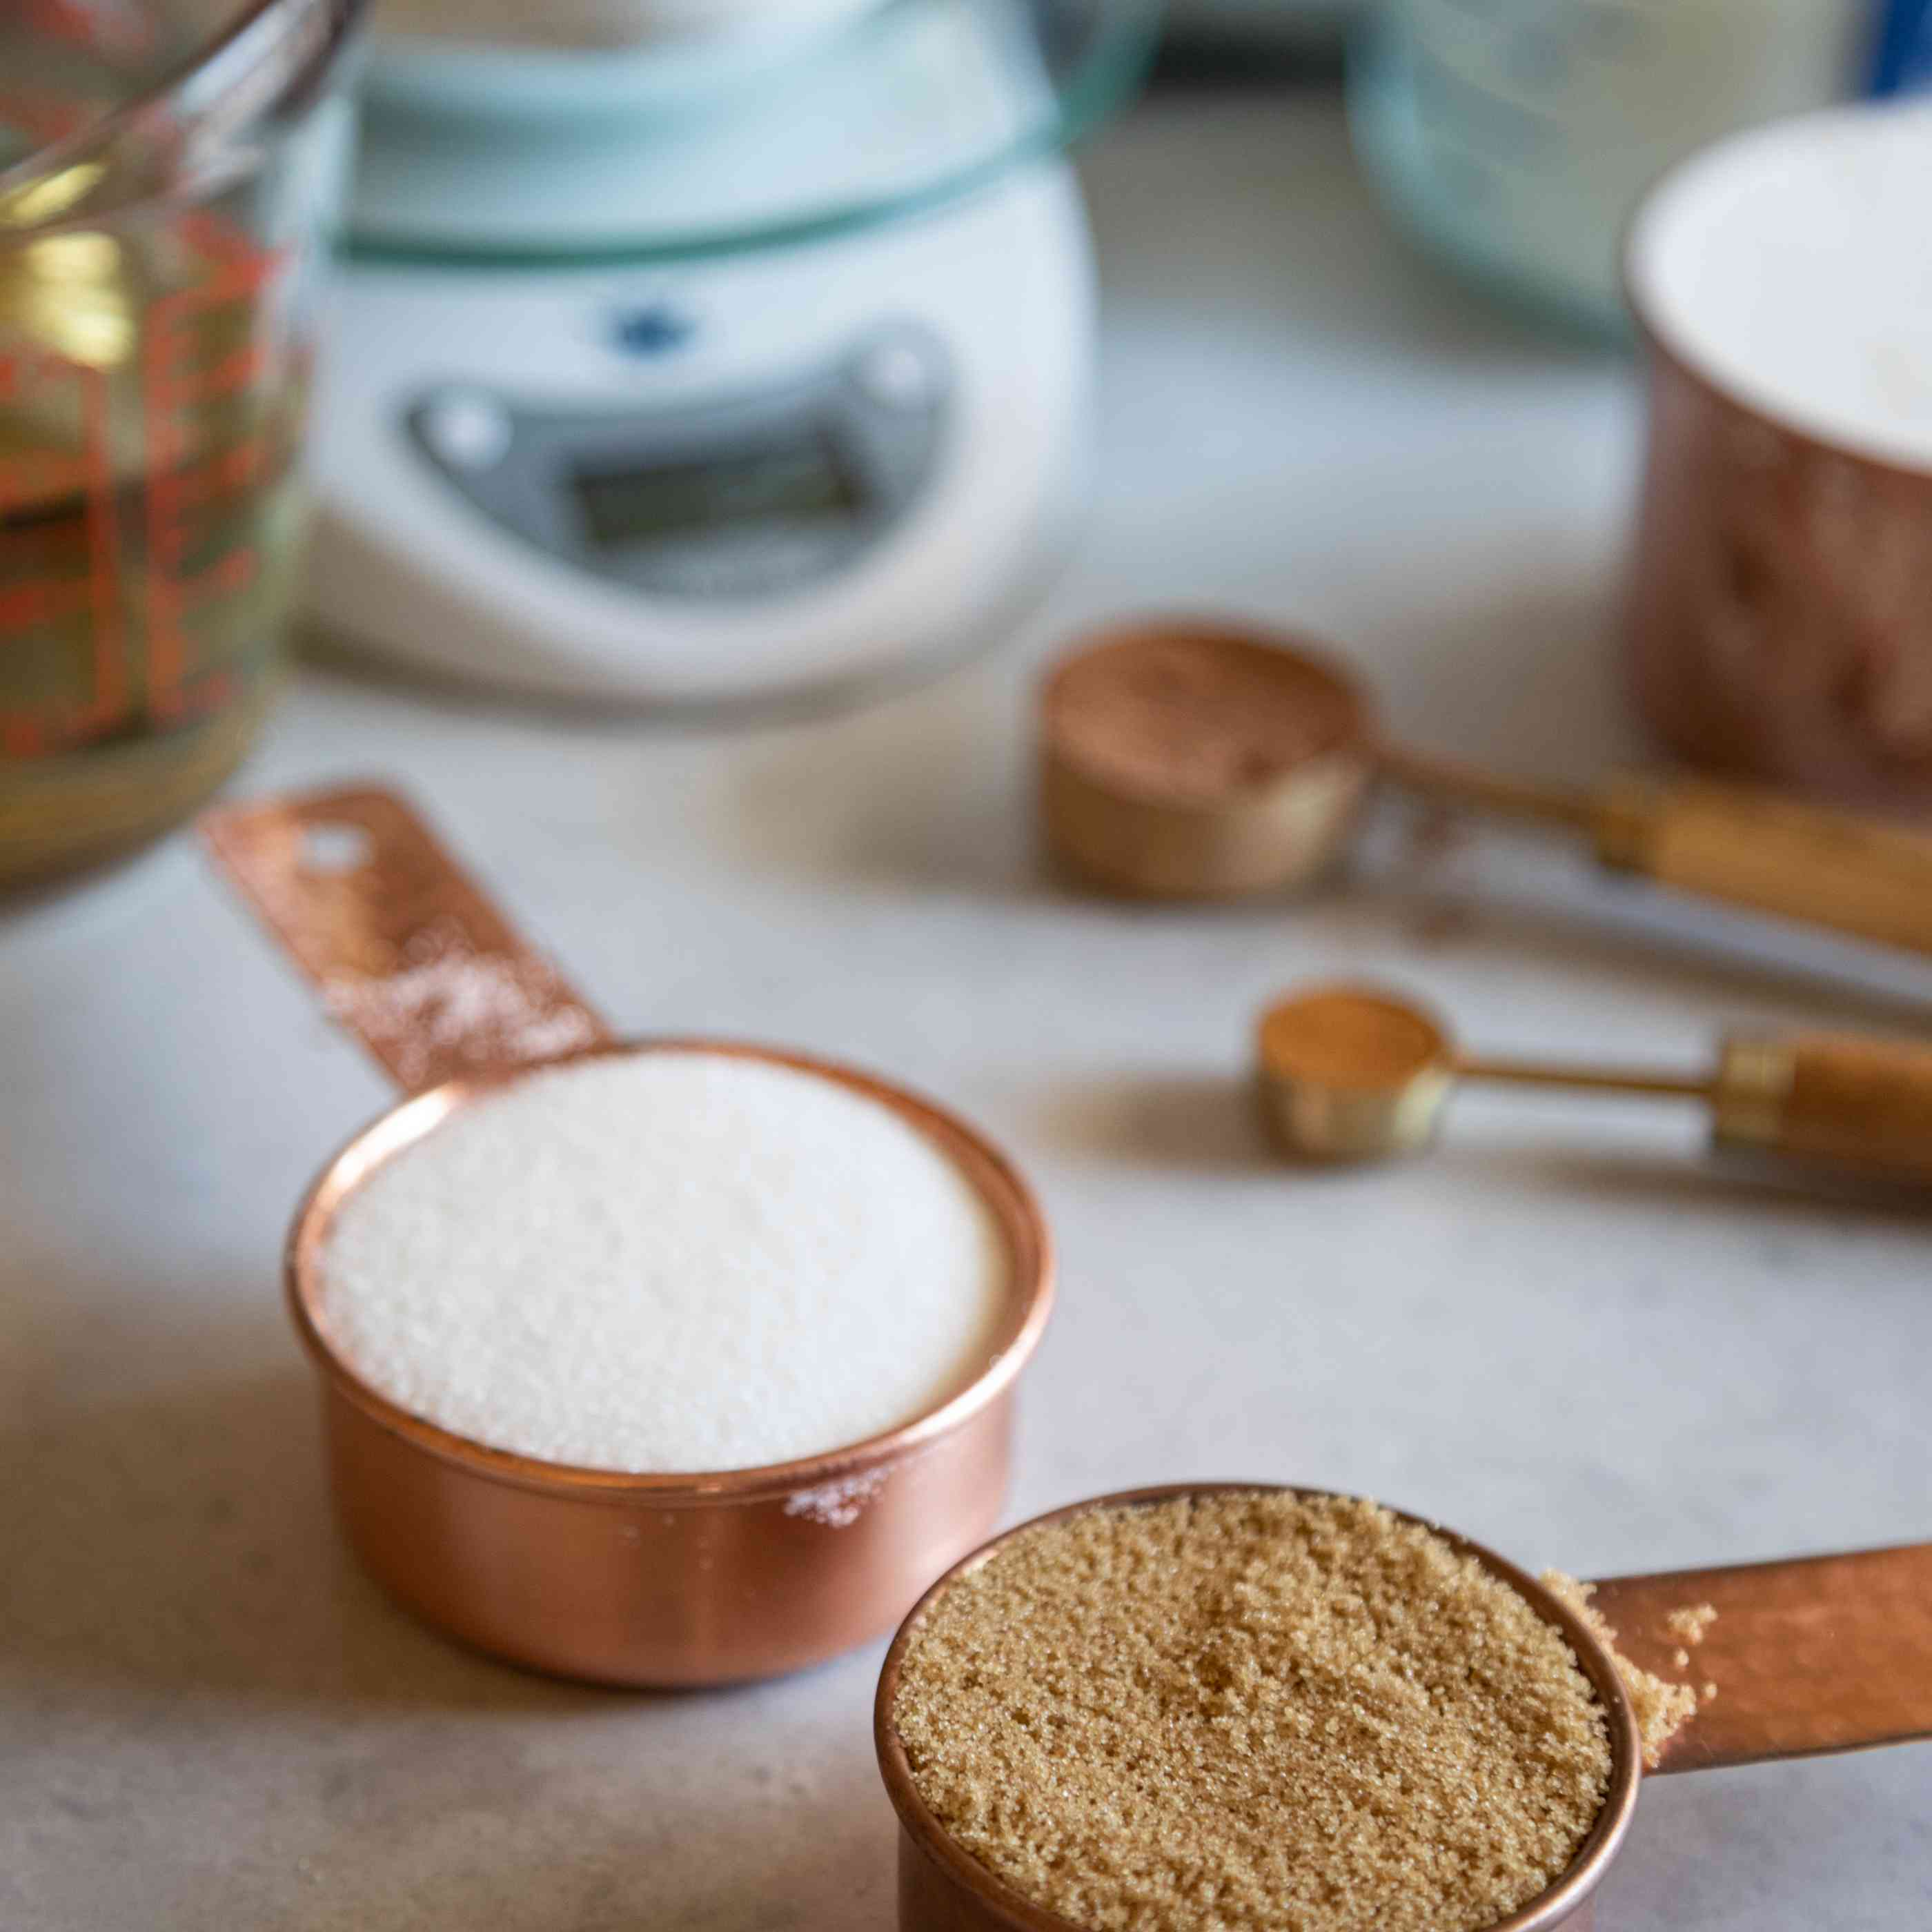 Measuring cups with sugar and measuring spoons, scale and flour in the background to show the best way to measure flour.